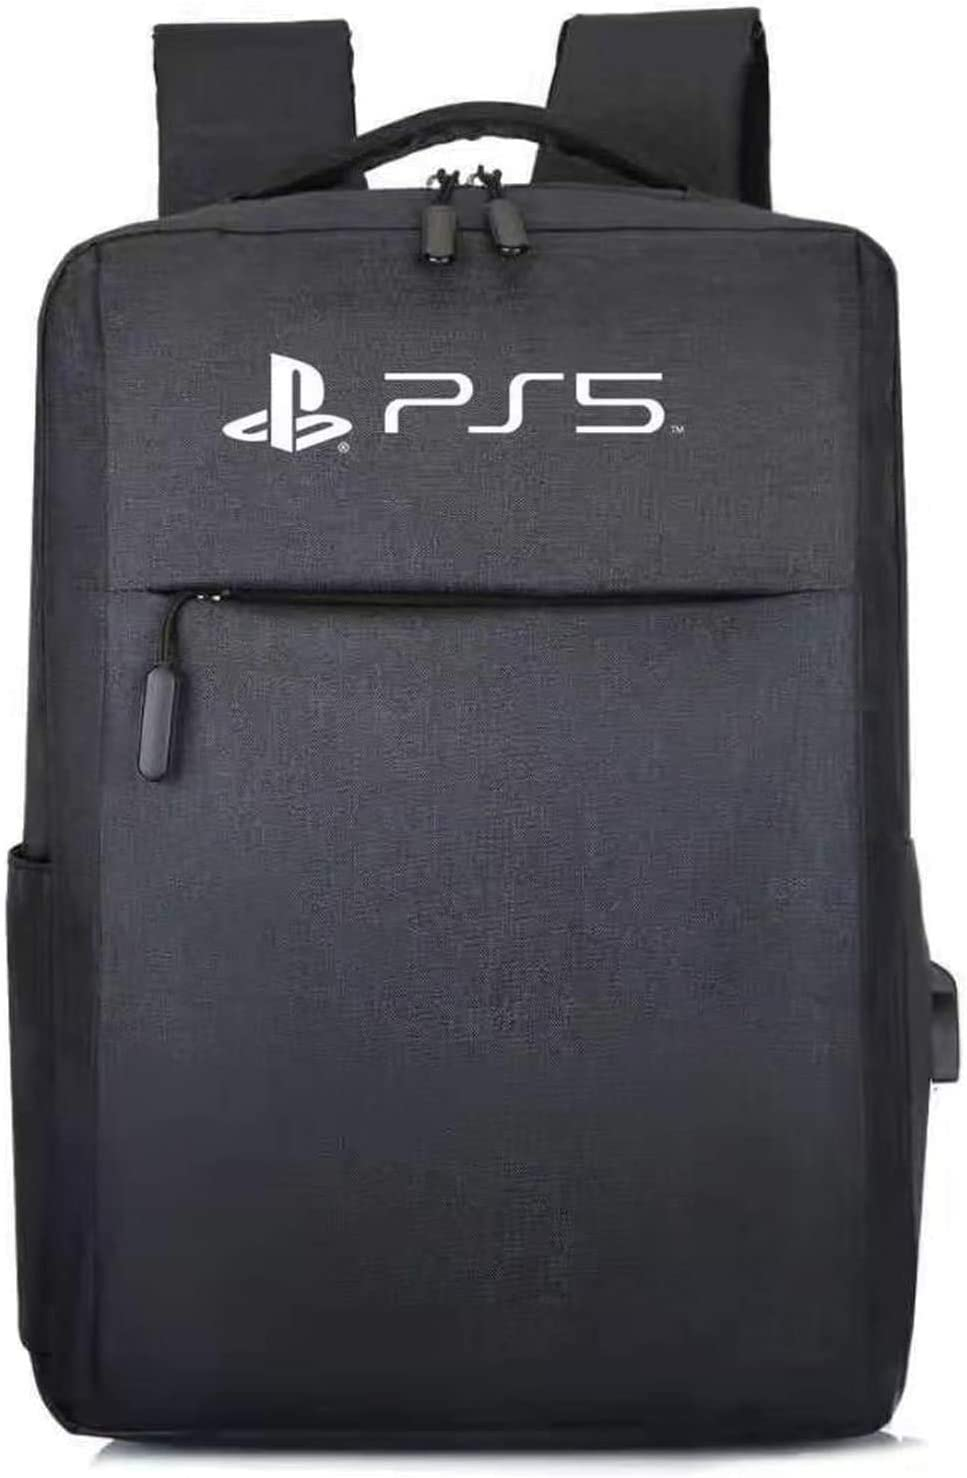 PS5 Backpack Laptop Travel Bag, Waterproof Nylon Travel with USB Connector, Game Console Carry Case & Controllers Storage Protective Case for Playstation 5/PS4/PS5 Accessories